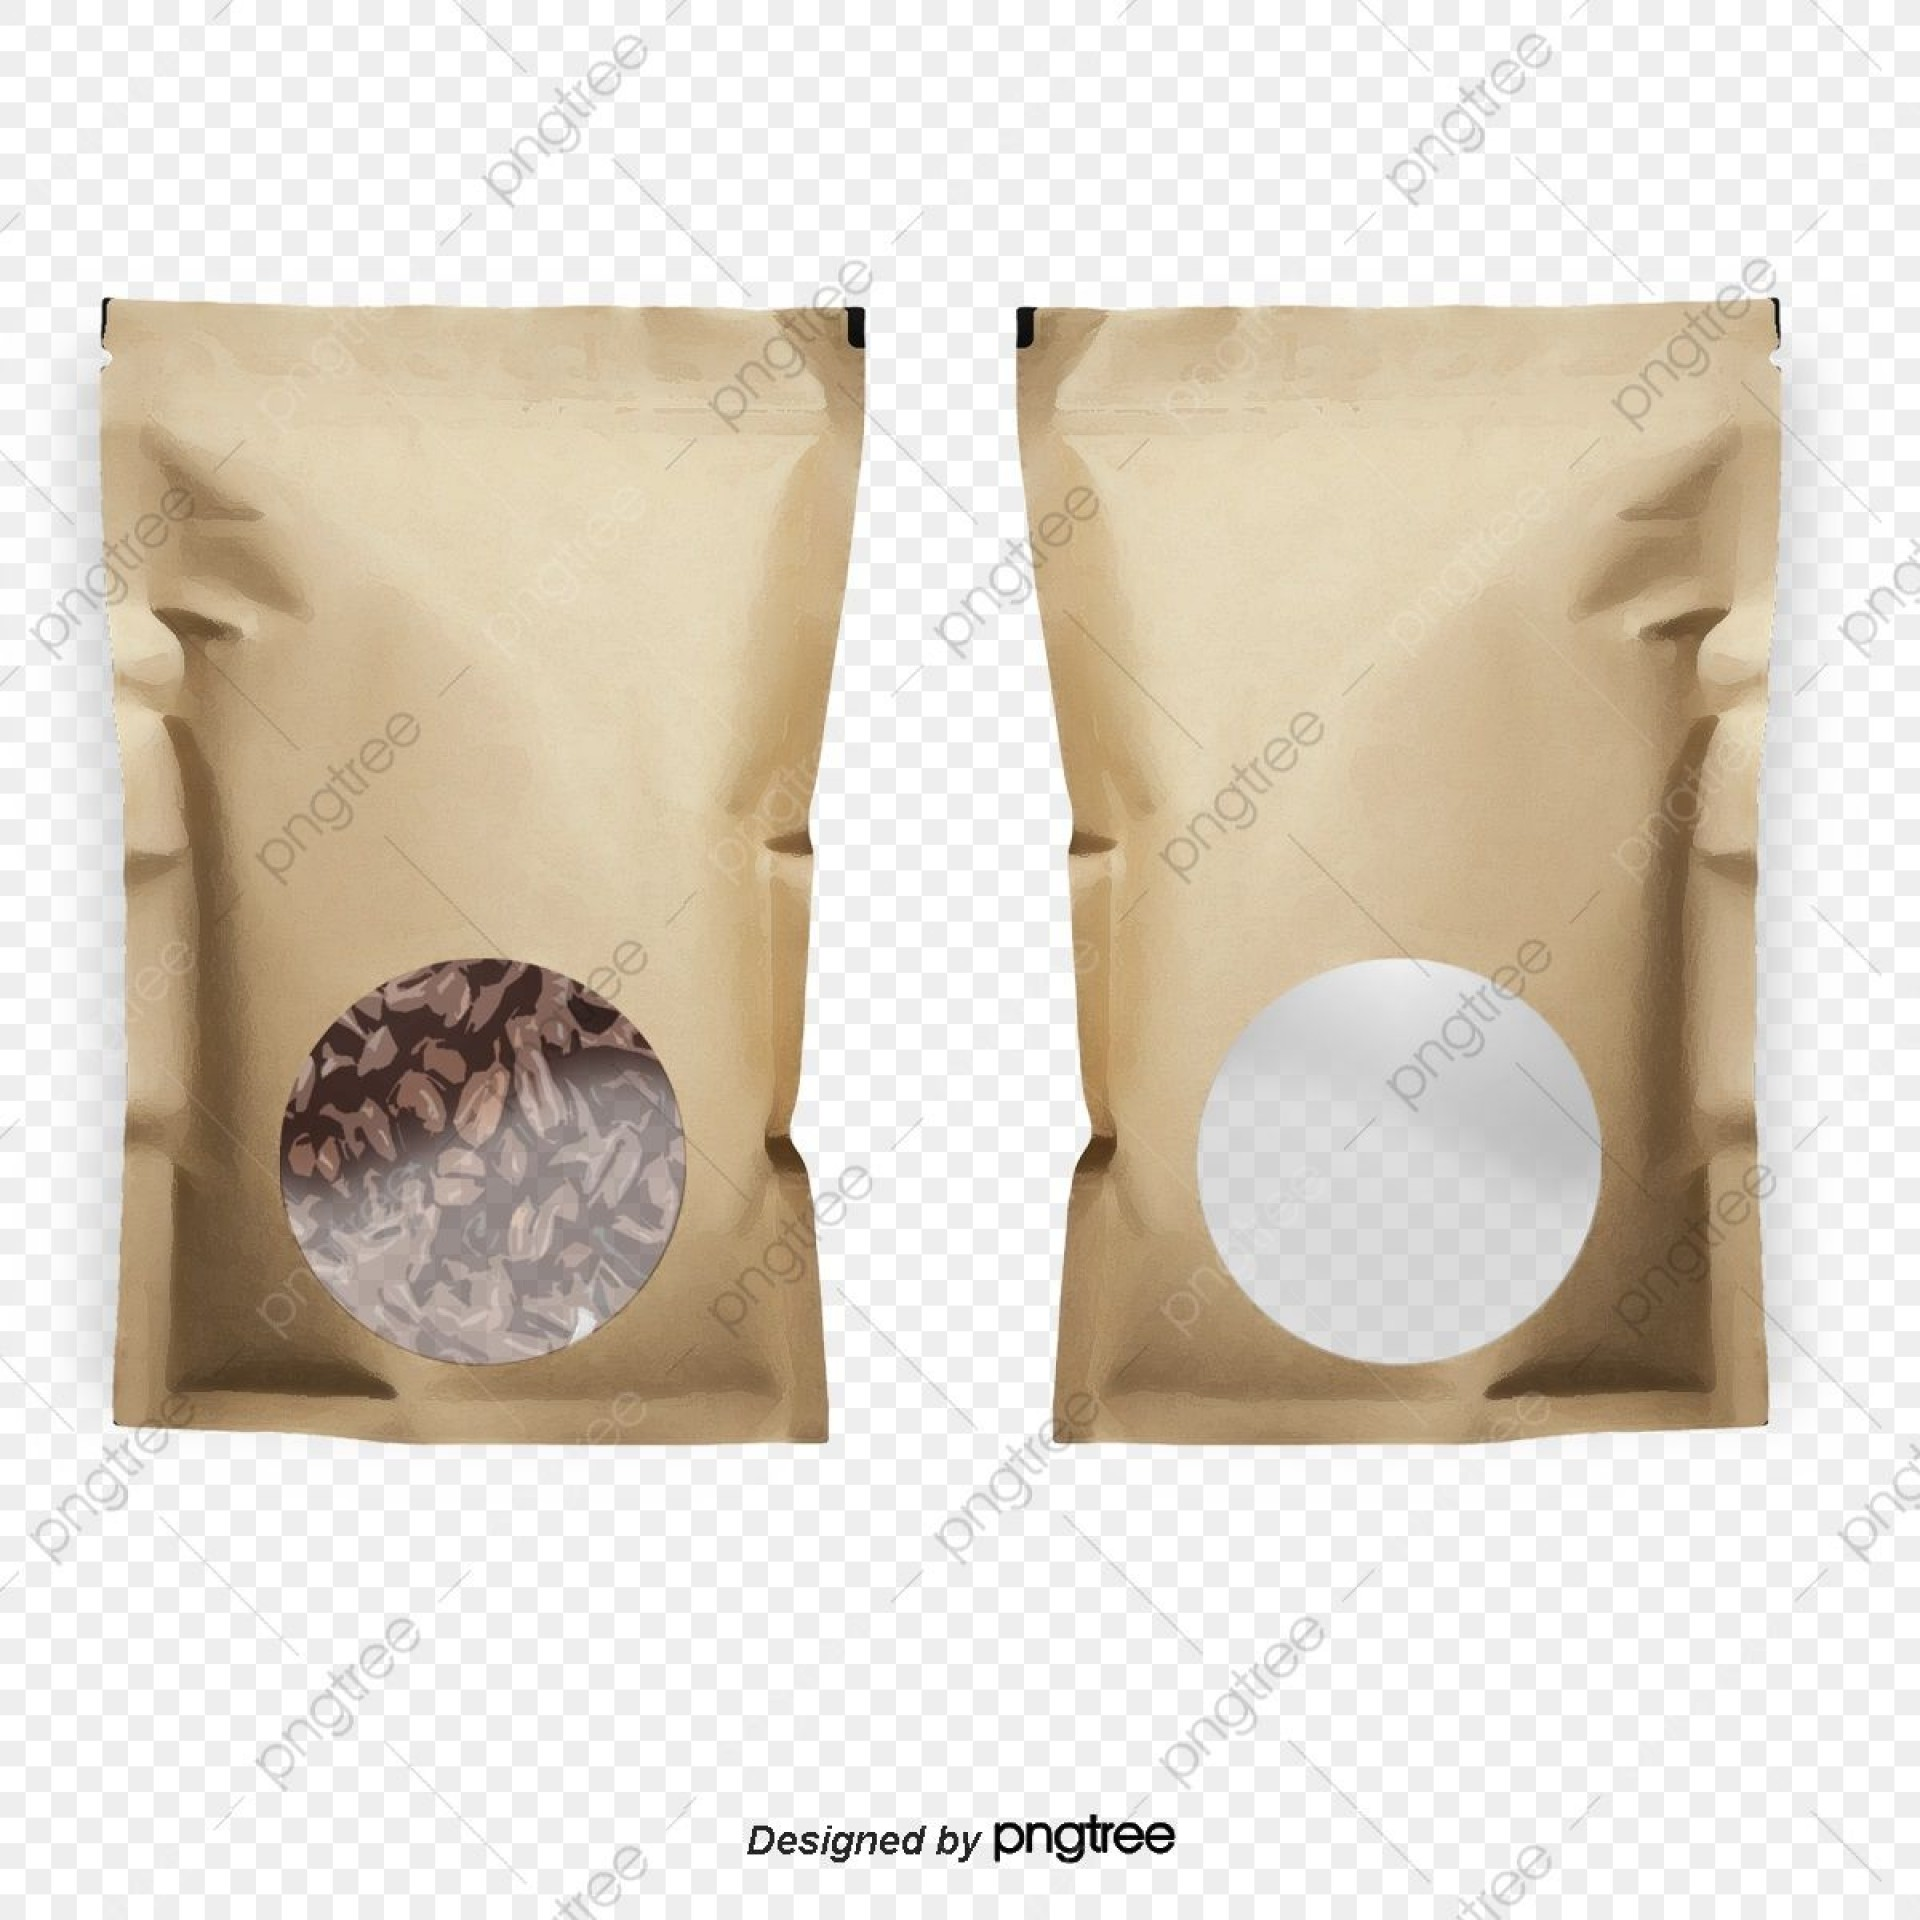 005 Fearsome Product Packaging Design Template Idea  Templates Free Download Sample1920